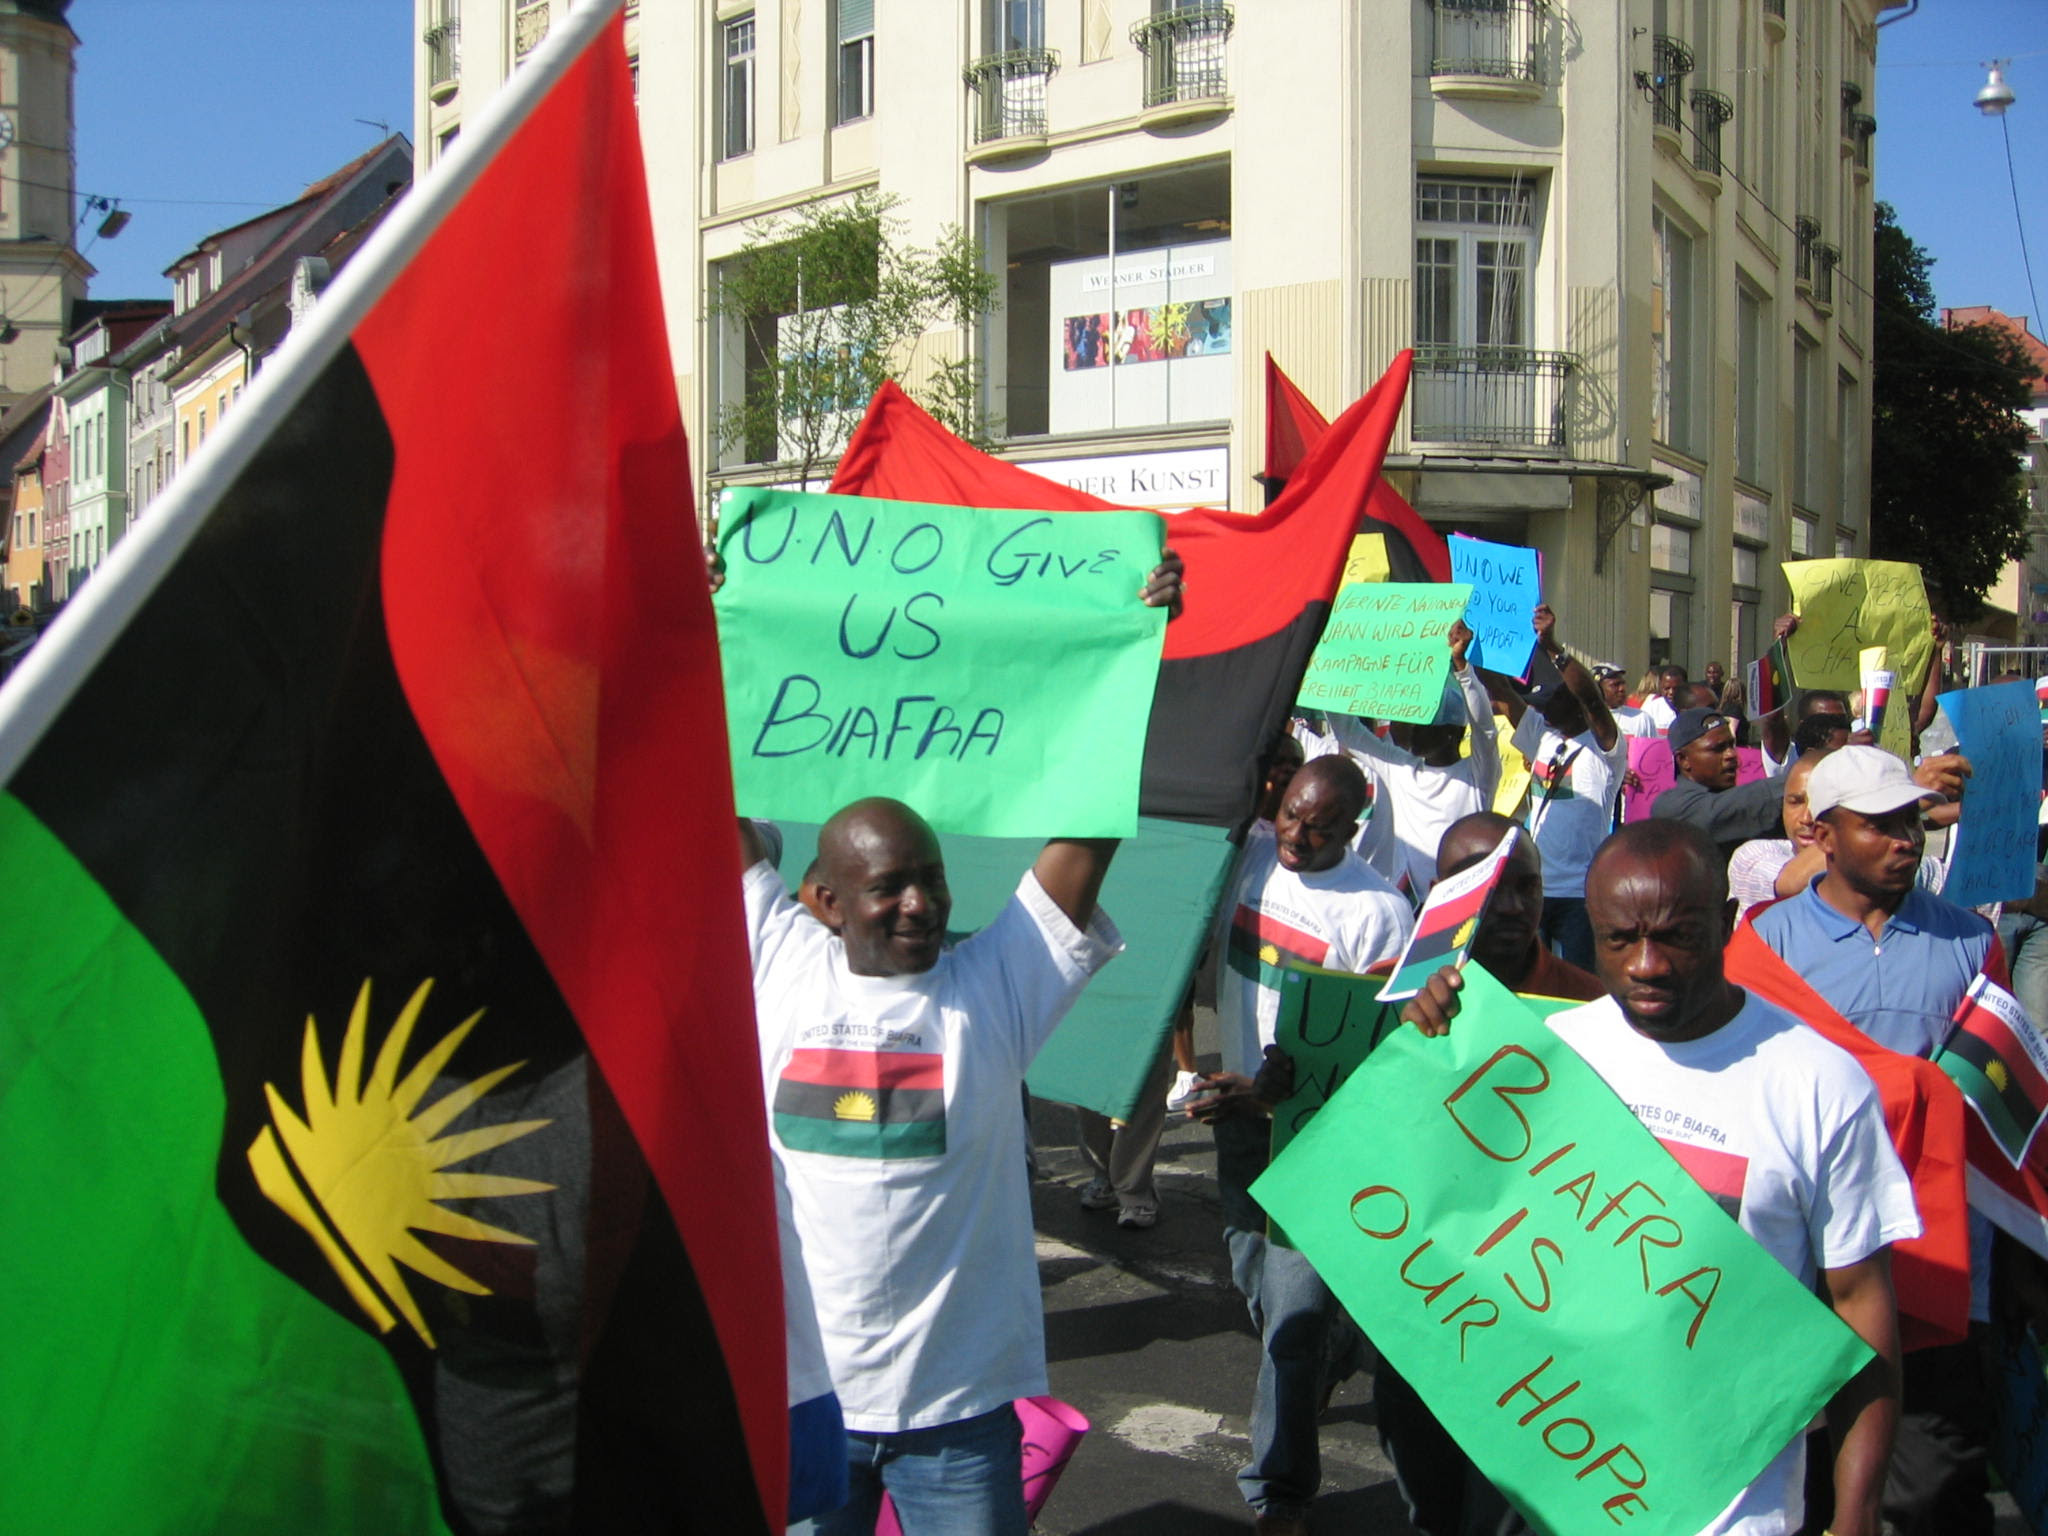 Biafra march and protest taking place in London.